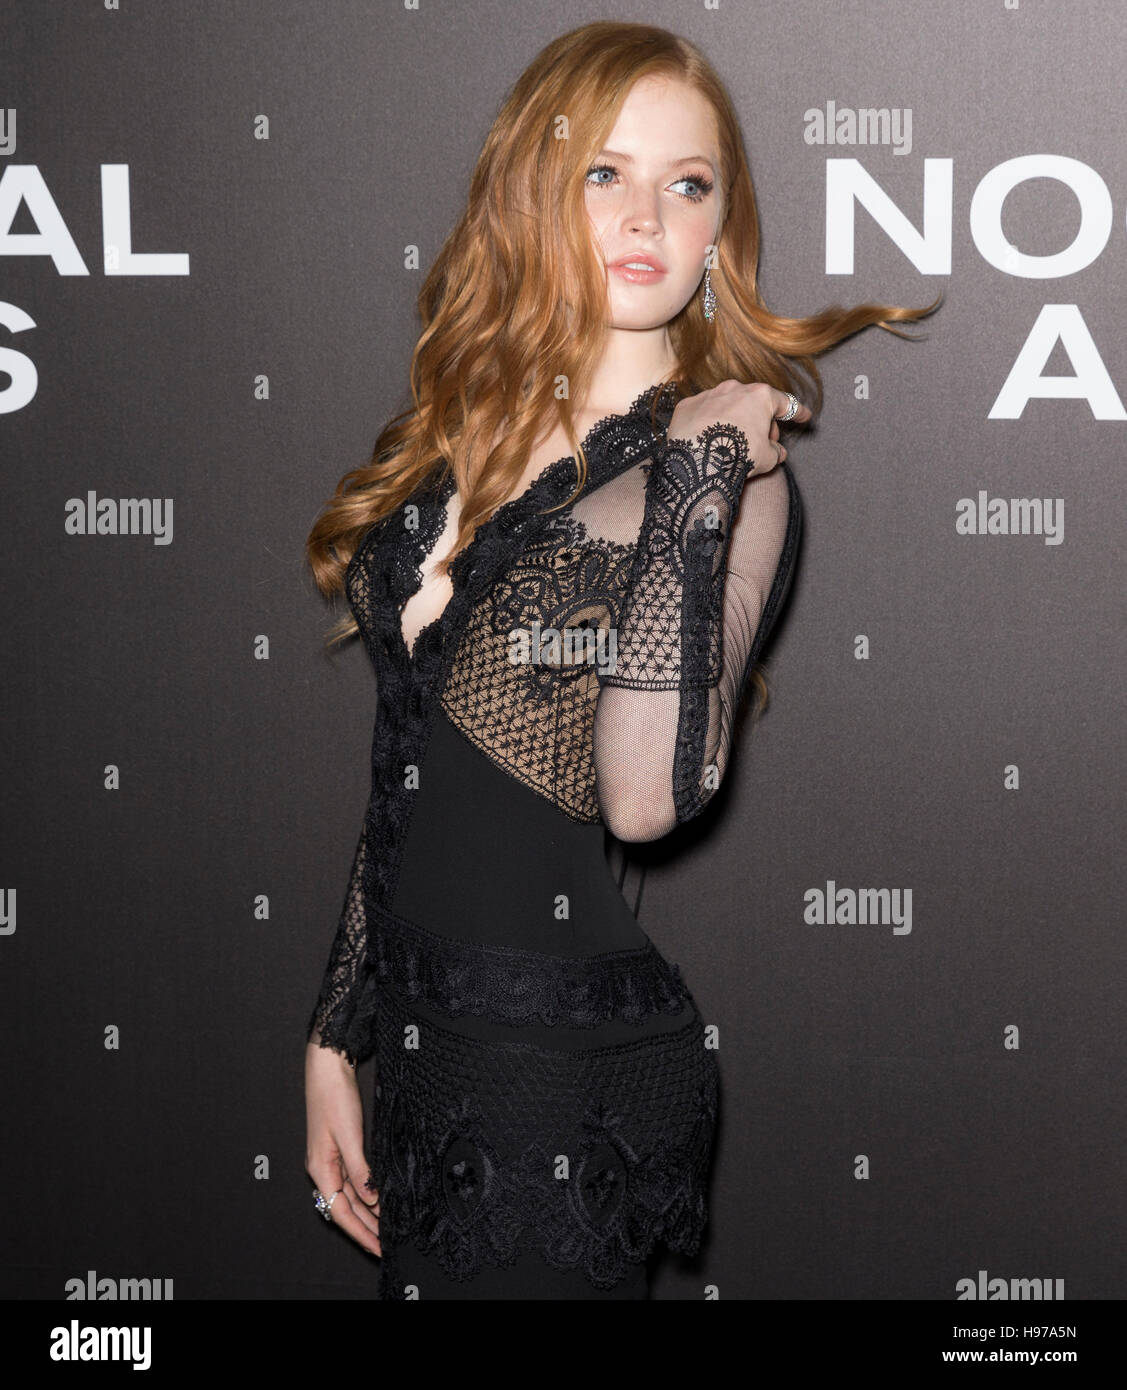 New York City, USA - November 17, 2016: Actress Ellie Bamber attends the 'Nocturnal Animals' New York premiere - Stock Image